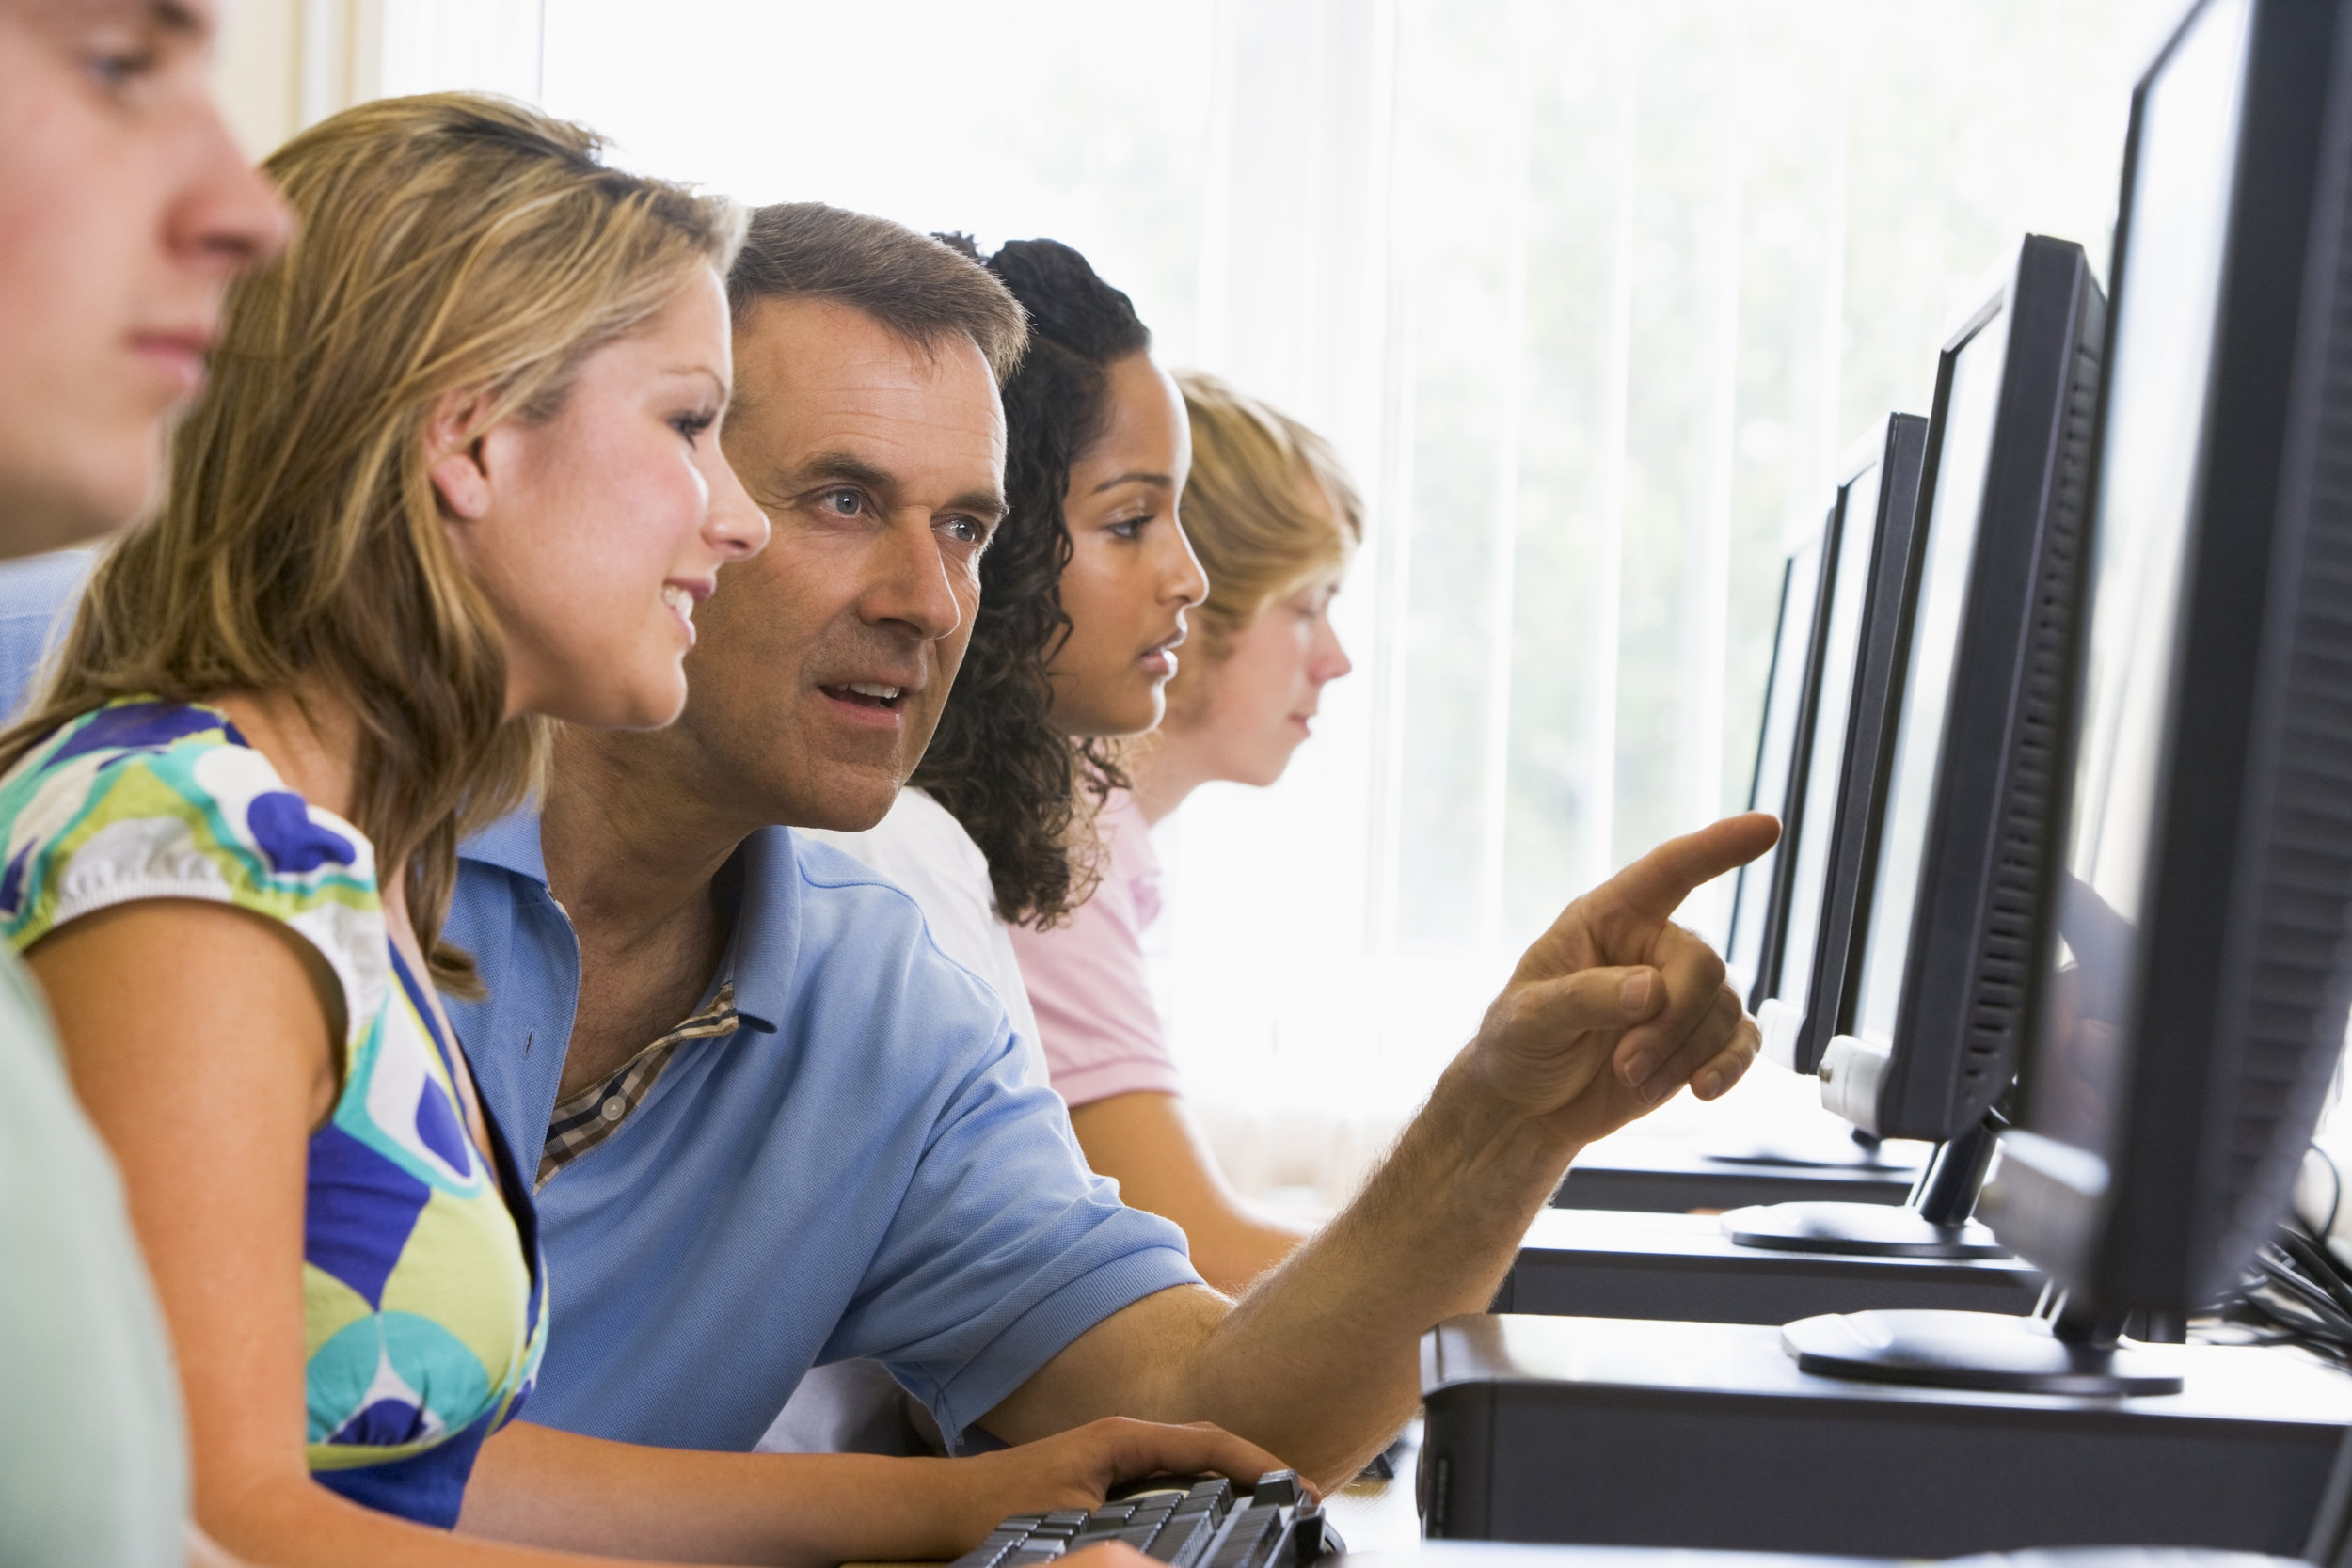 Computer teaching - purchased from shutterstock (large).jpg